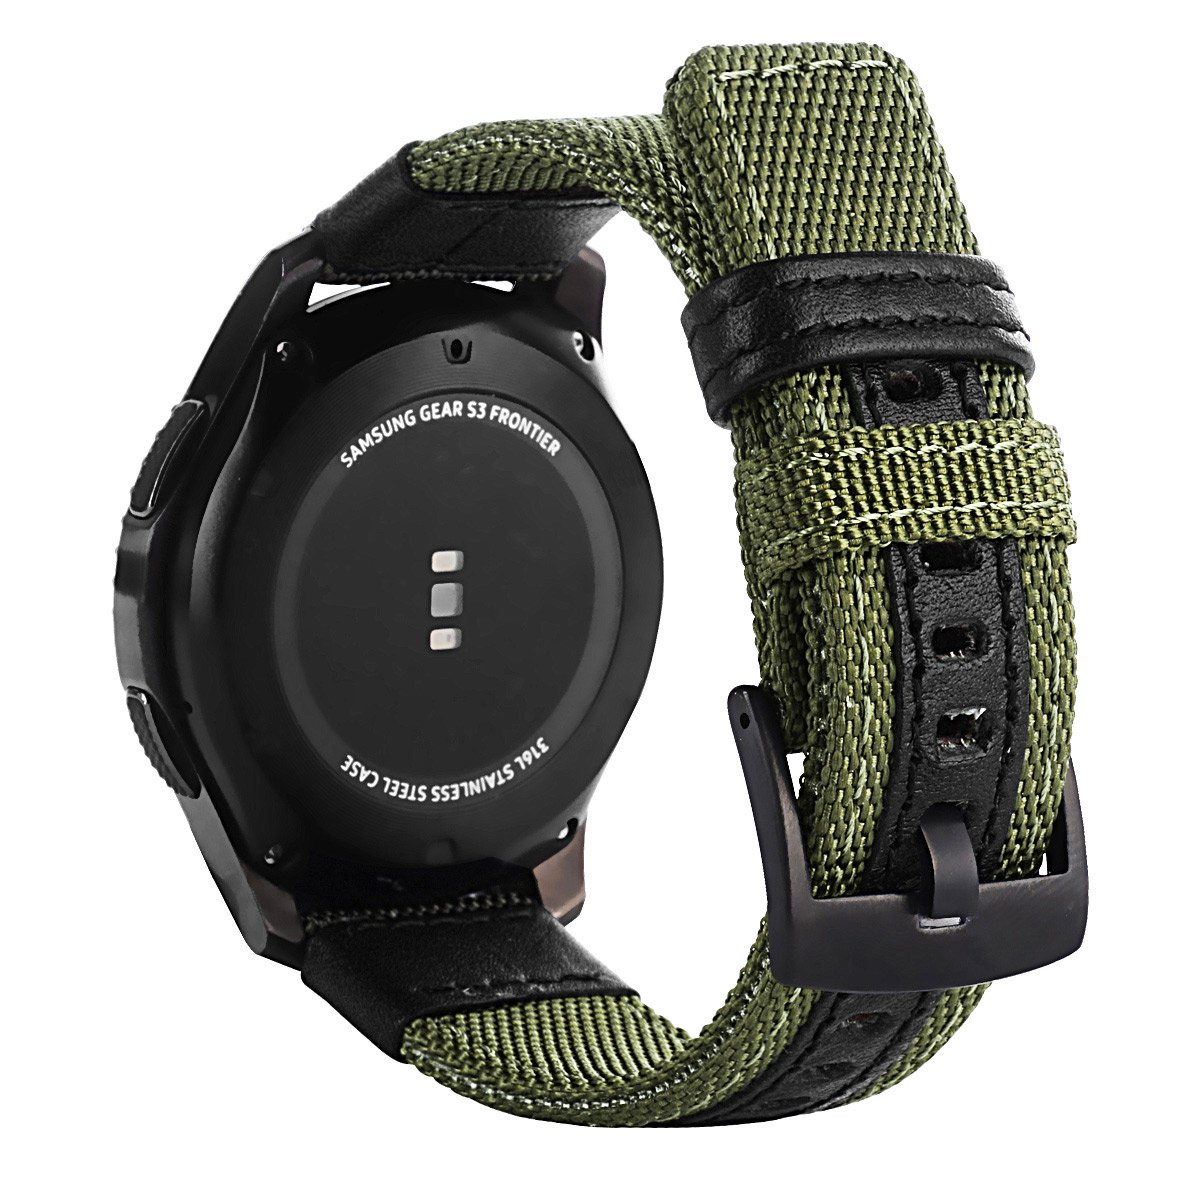 Gear S3 Bands Nylon, Maxjoy S3 Frontier Classic Band 22 mm Nylon Replacement Strap Galaxy Watch 46mm Bands Large Sport Wristband with Stainless Metal Buckle for Samsung Gear S3 Smart Watch, Army Green by Maxjoy